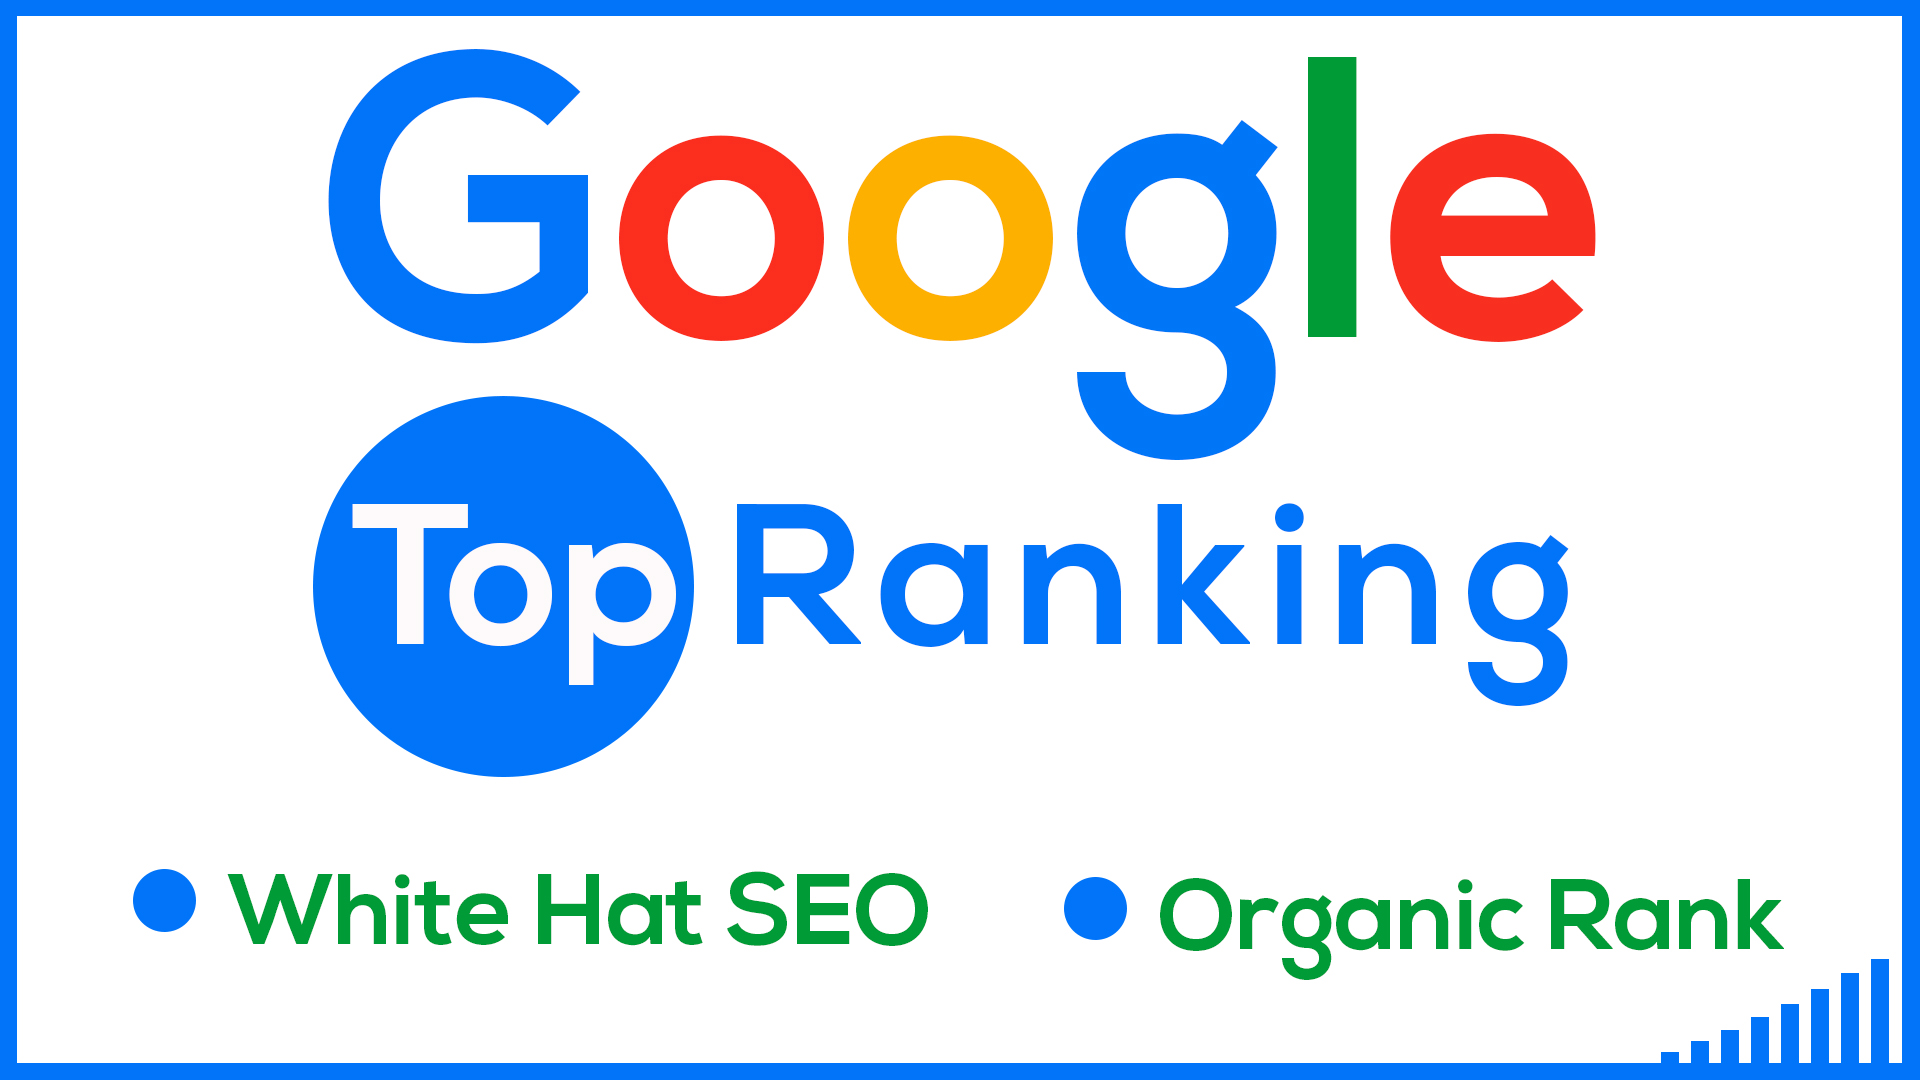 Boost Your Site On Google 1st Page With Our All in One Seo Strategy for Google Top Ranking